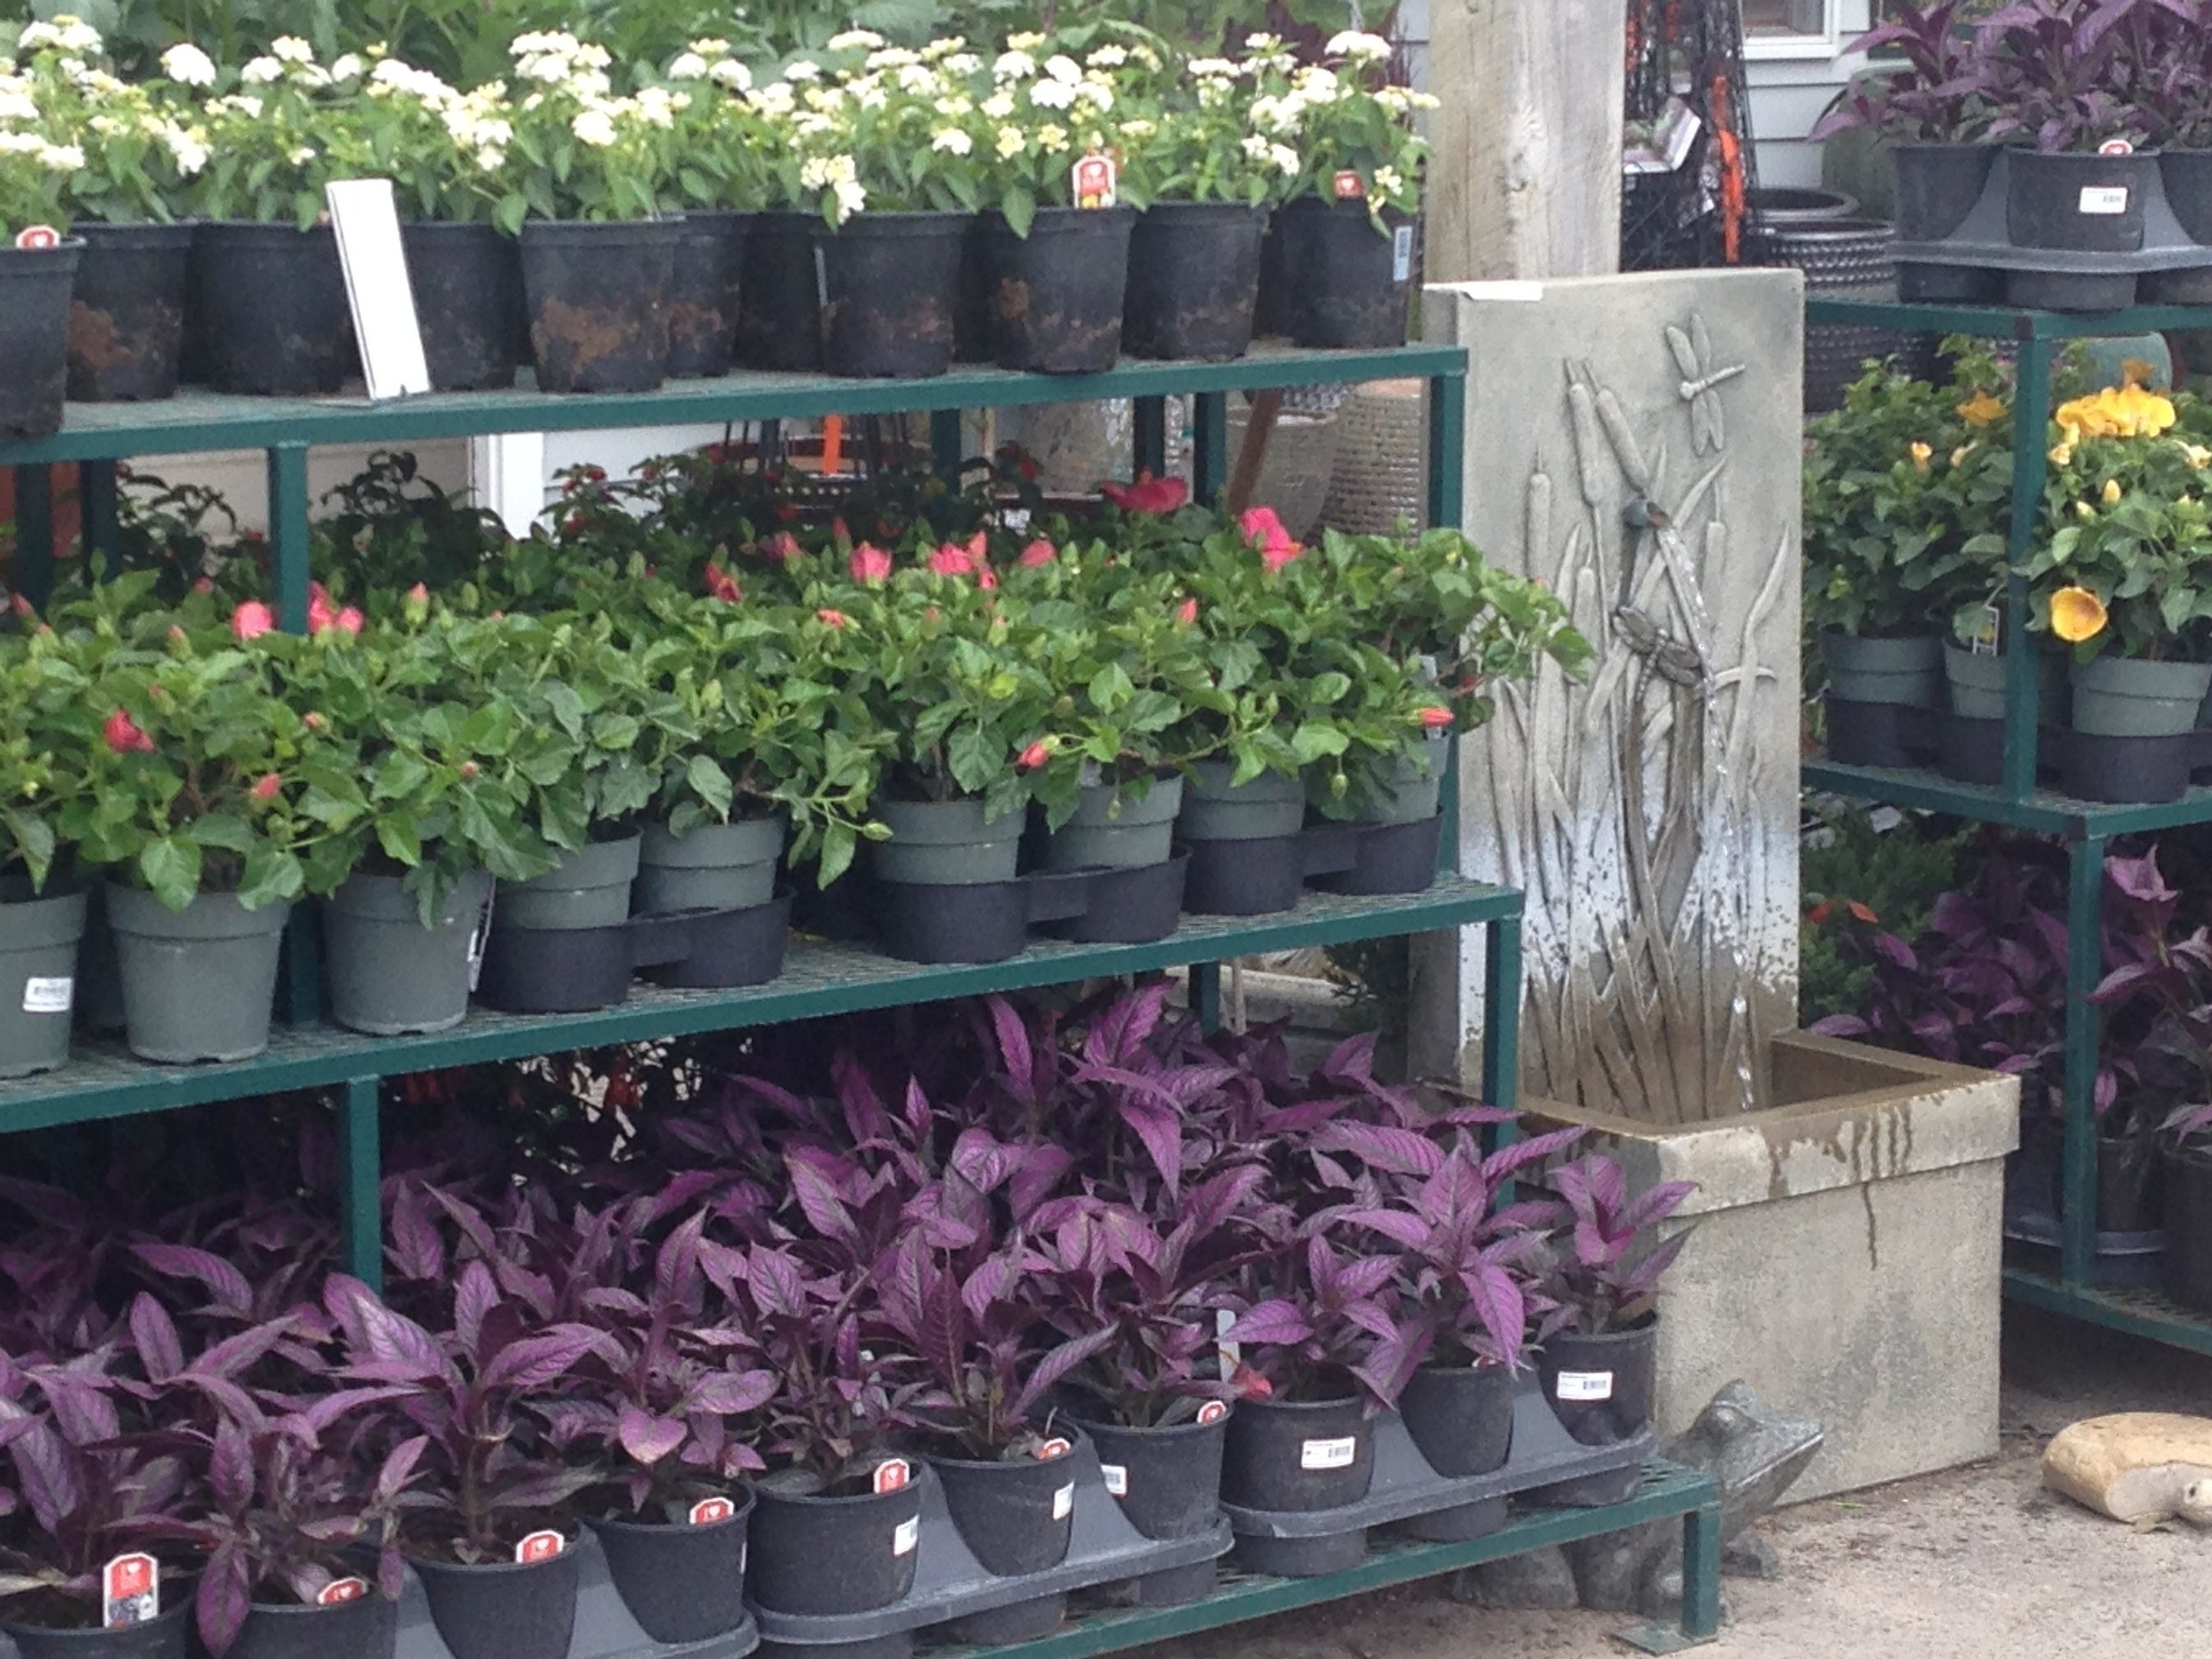 persian shield plants have unusual color foliage